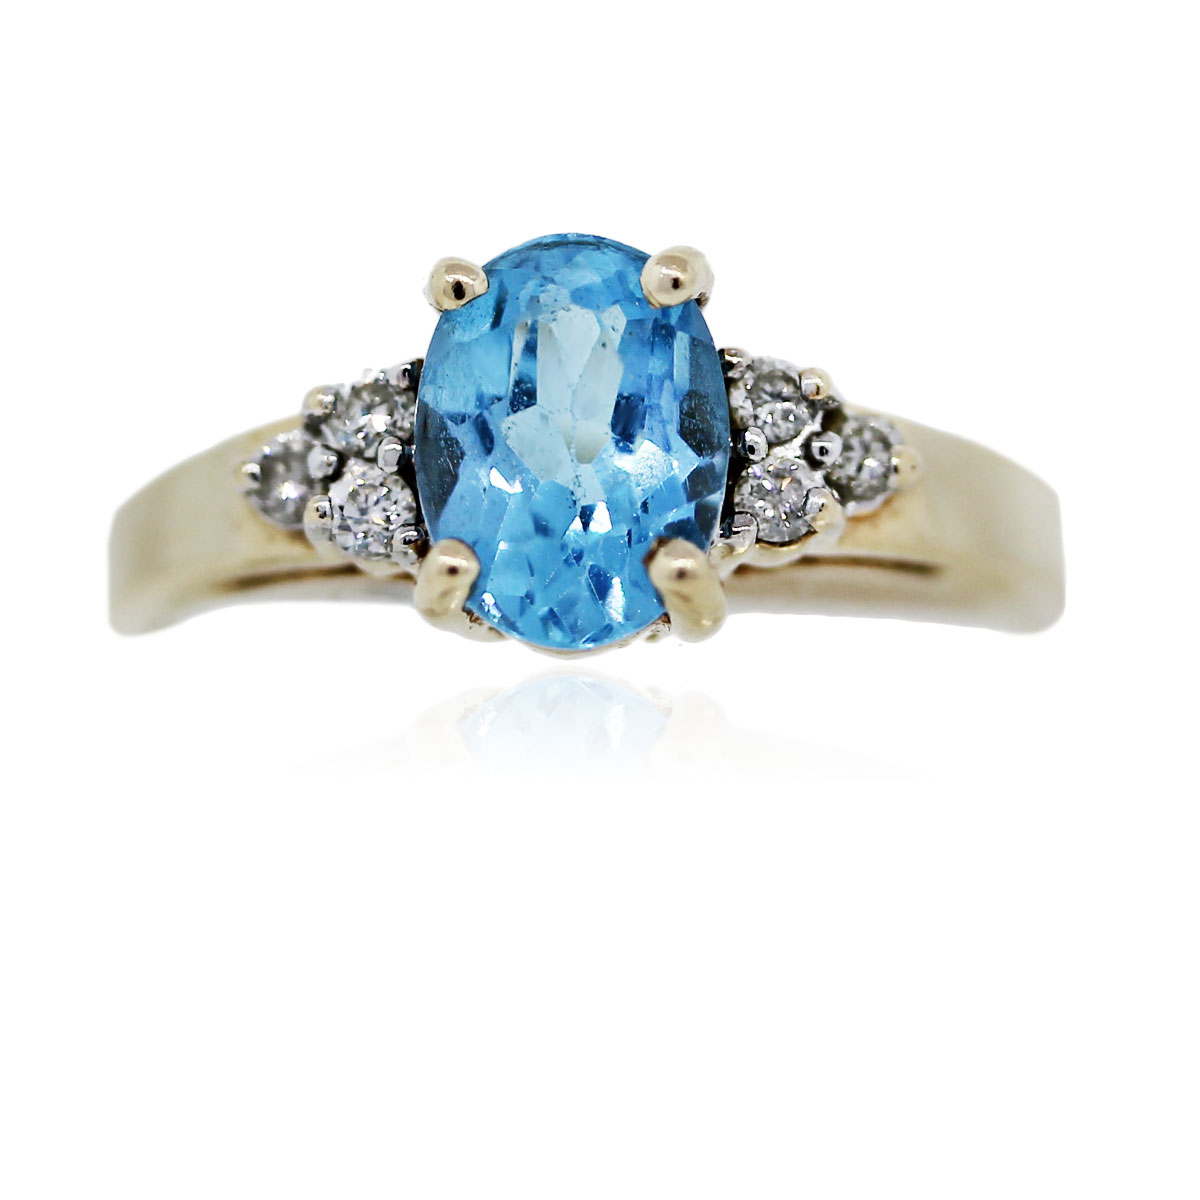 14k yellow gold oval shape blue topaz with diamonds ring